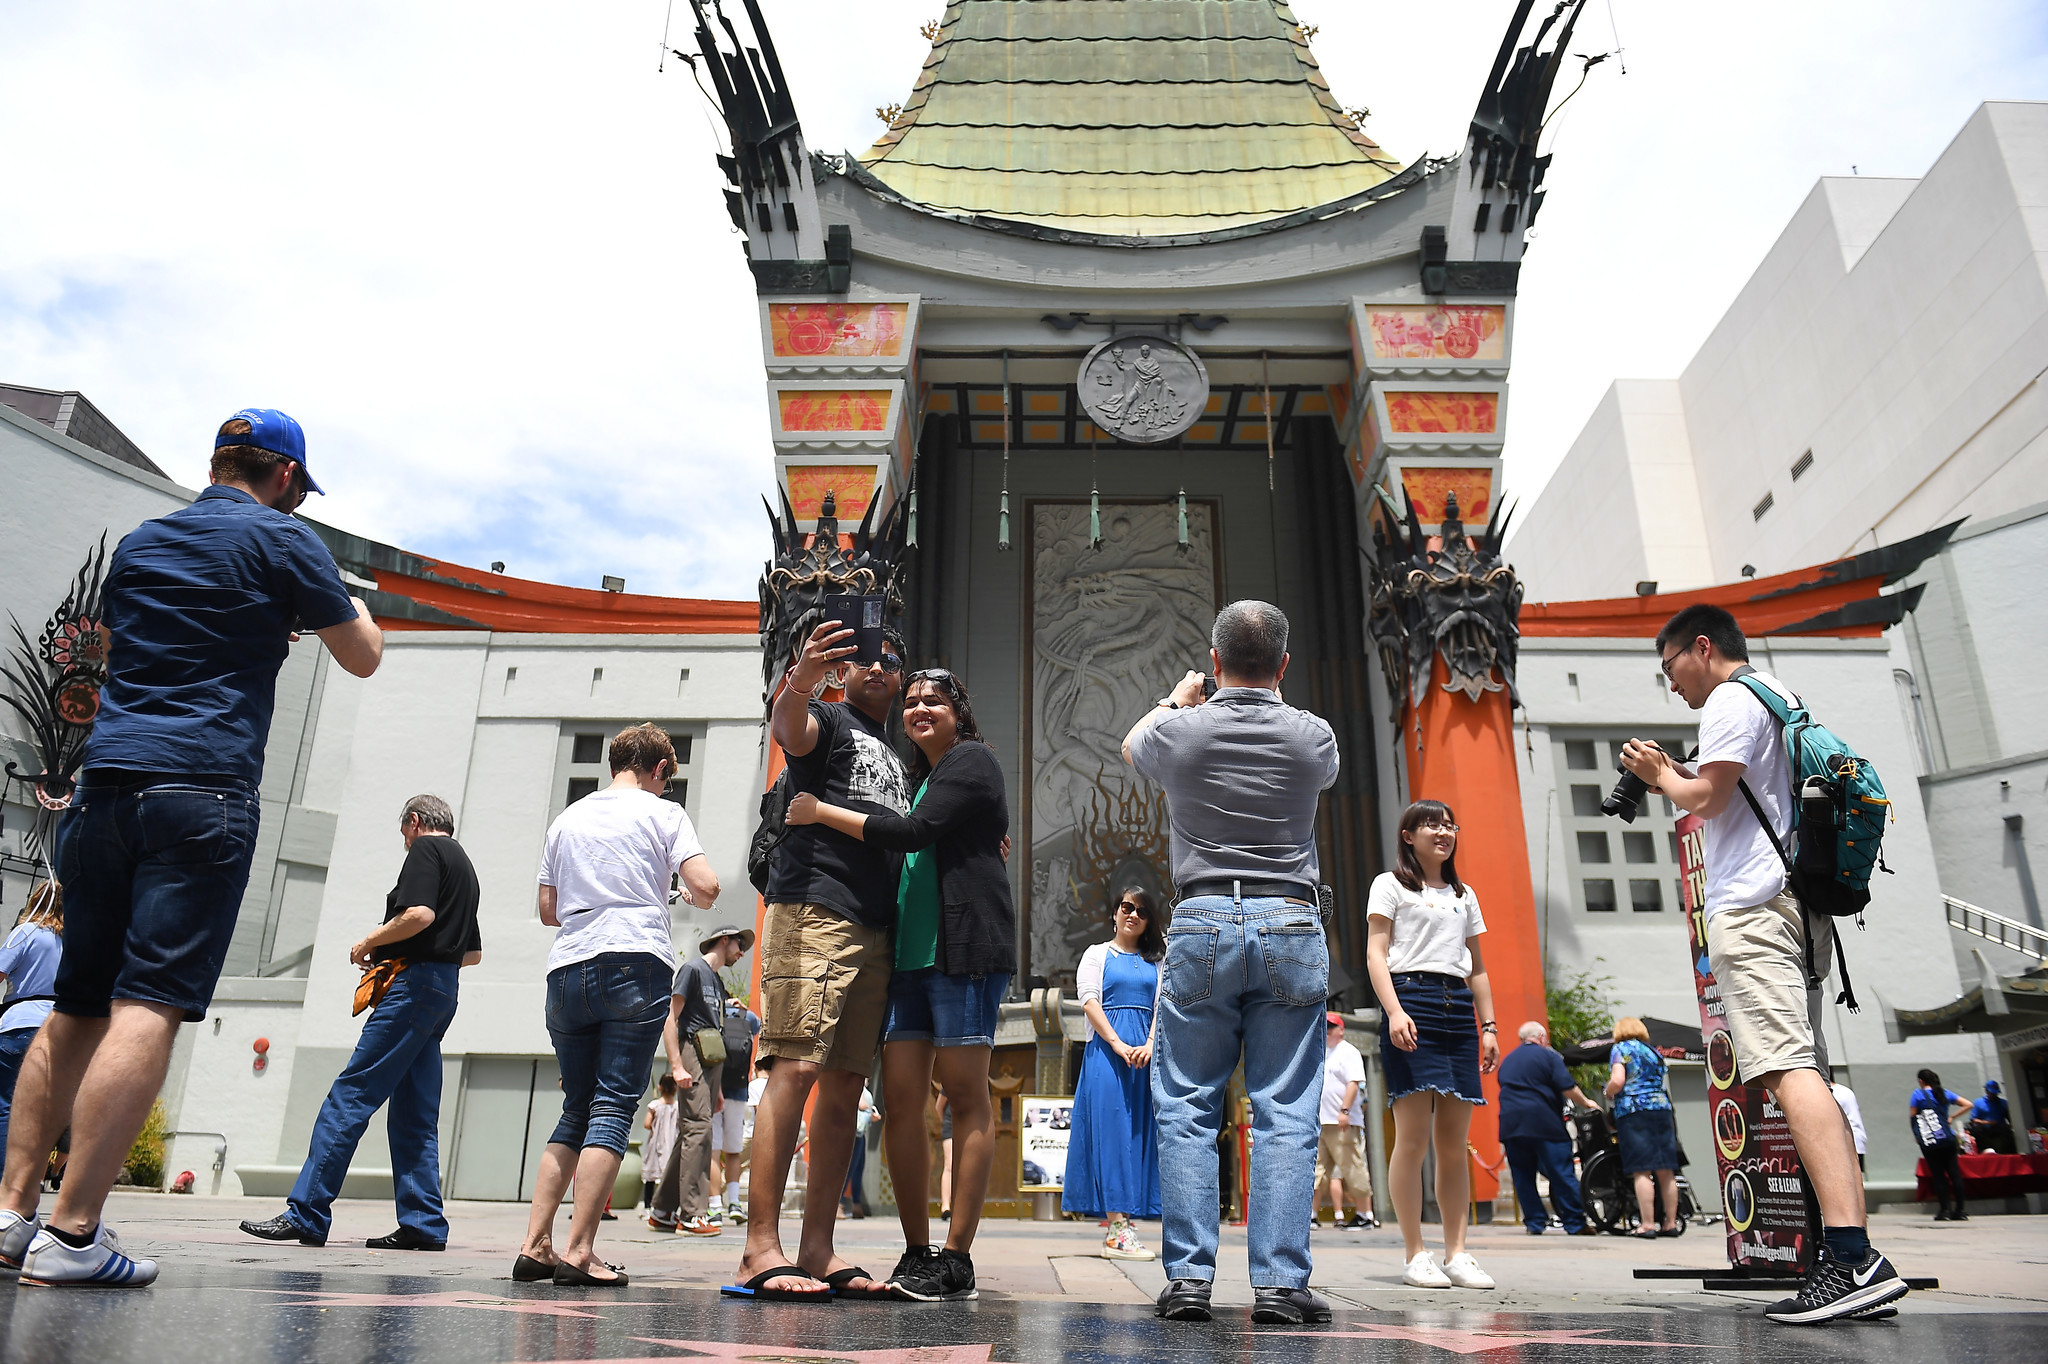 Tourists visit the TCL Chinese Theatre Imax in Hollywood on May 2.